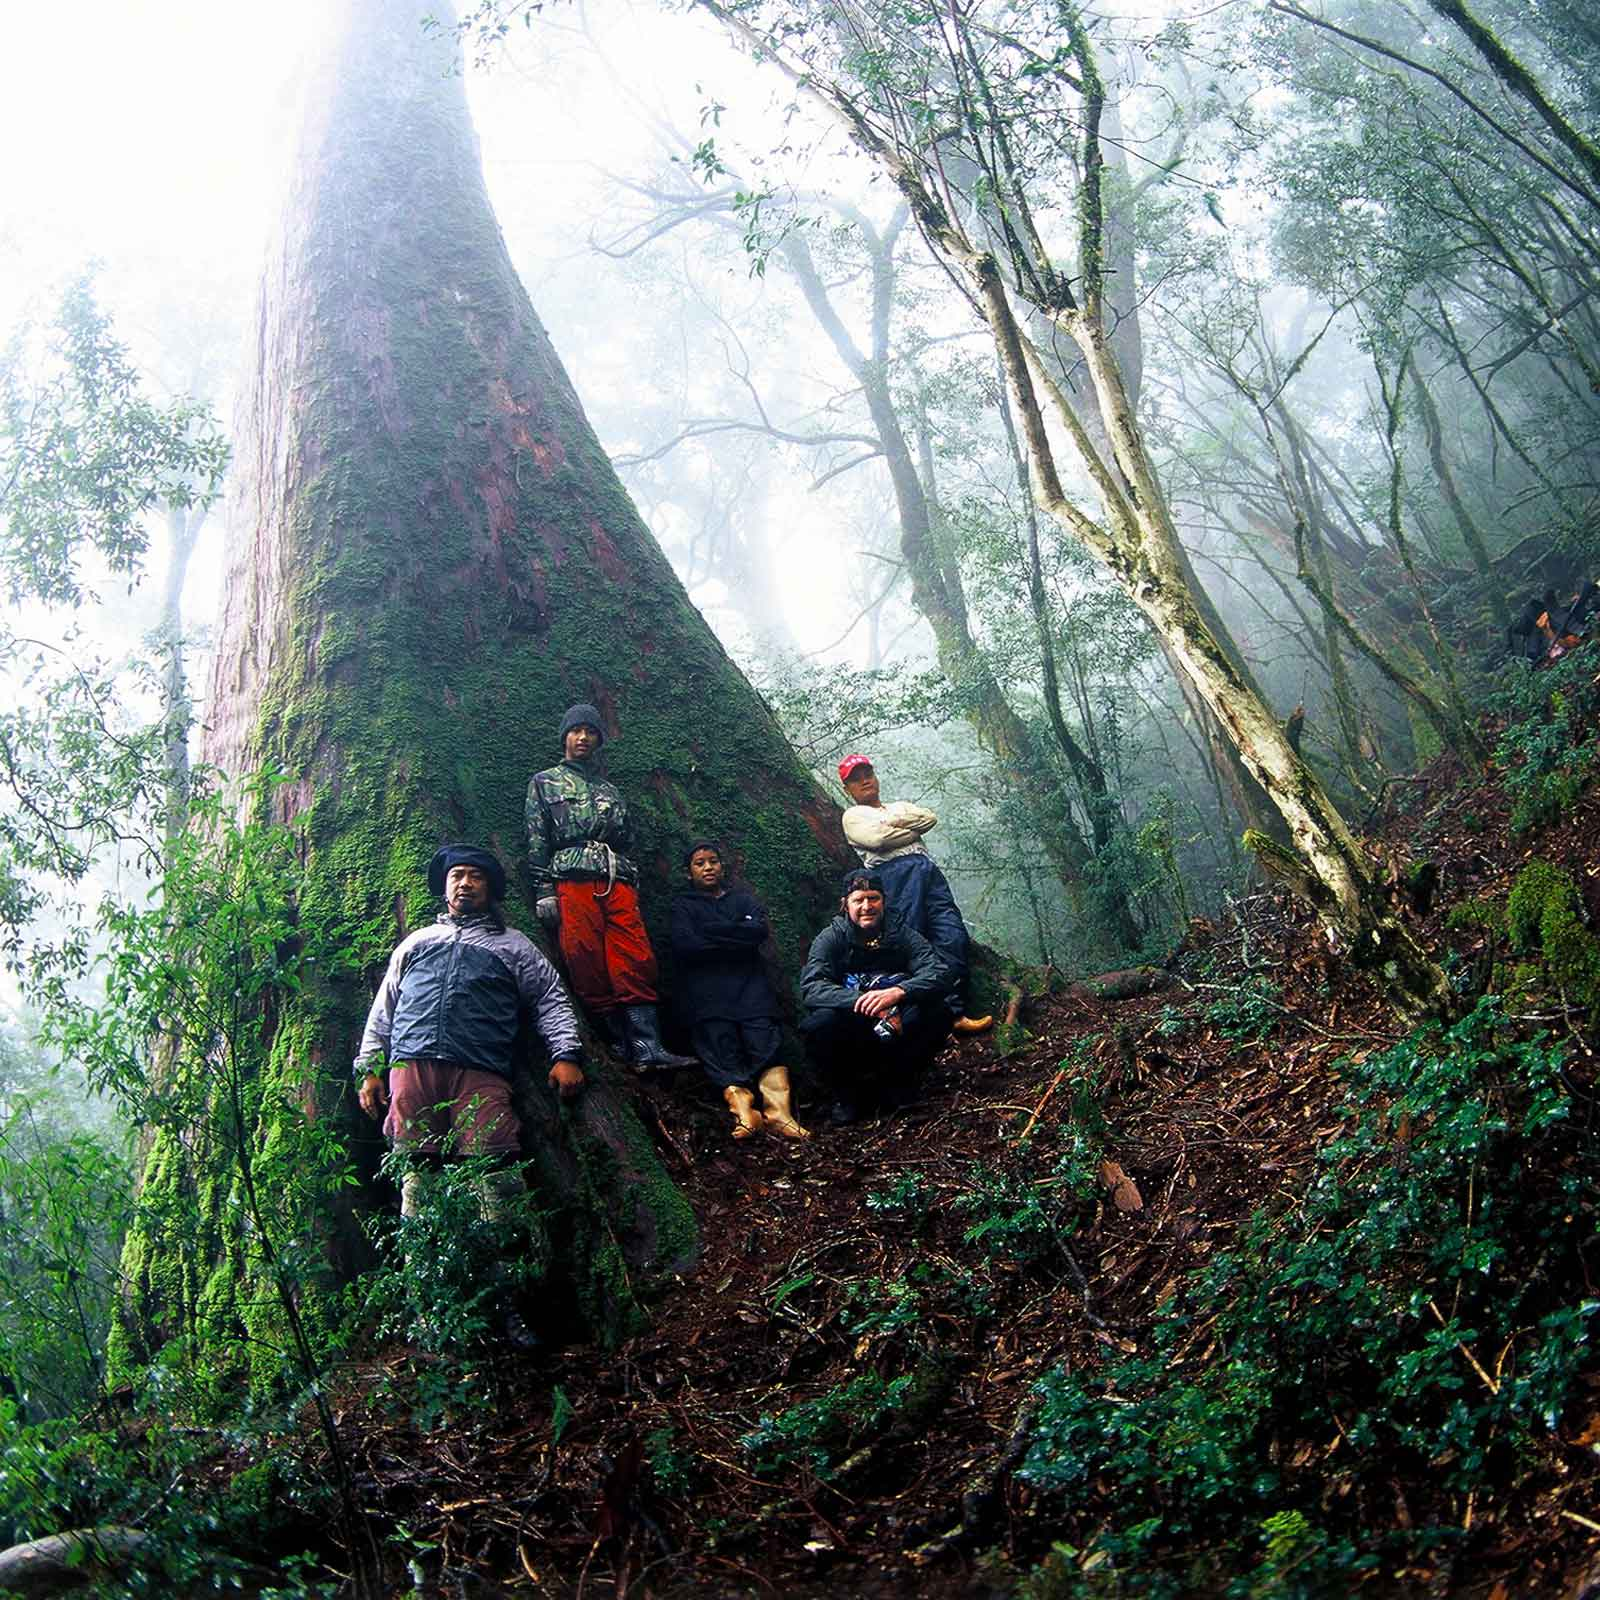 2006 Laipunuk Expedition Team - Dr Steven A Martin - Taiwan Photo Journal